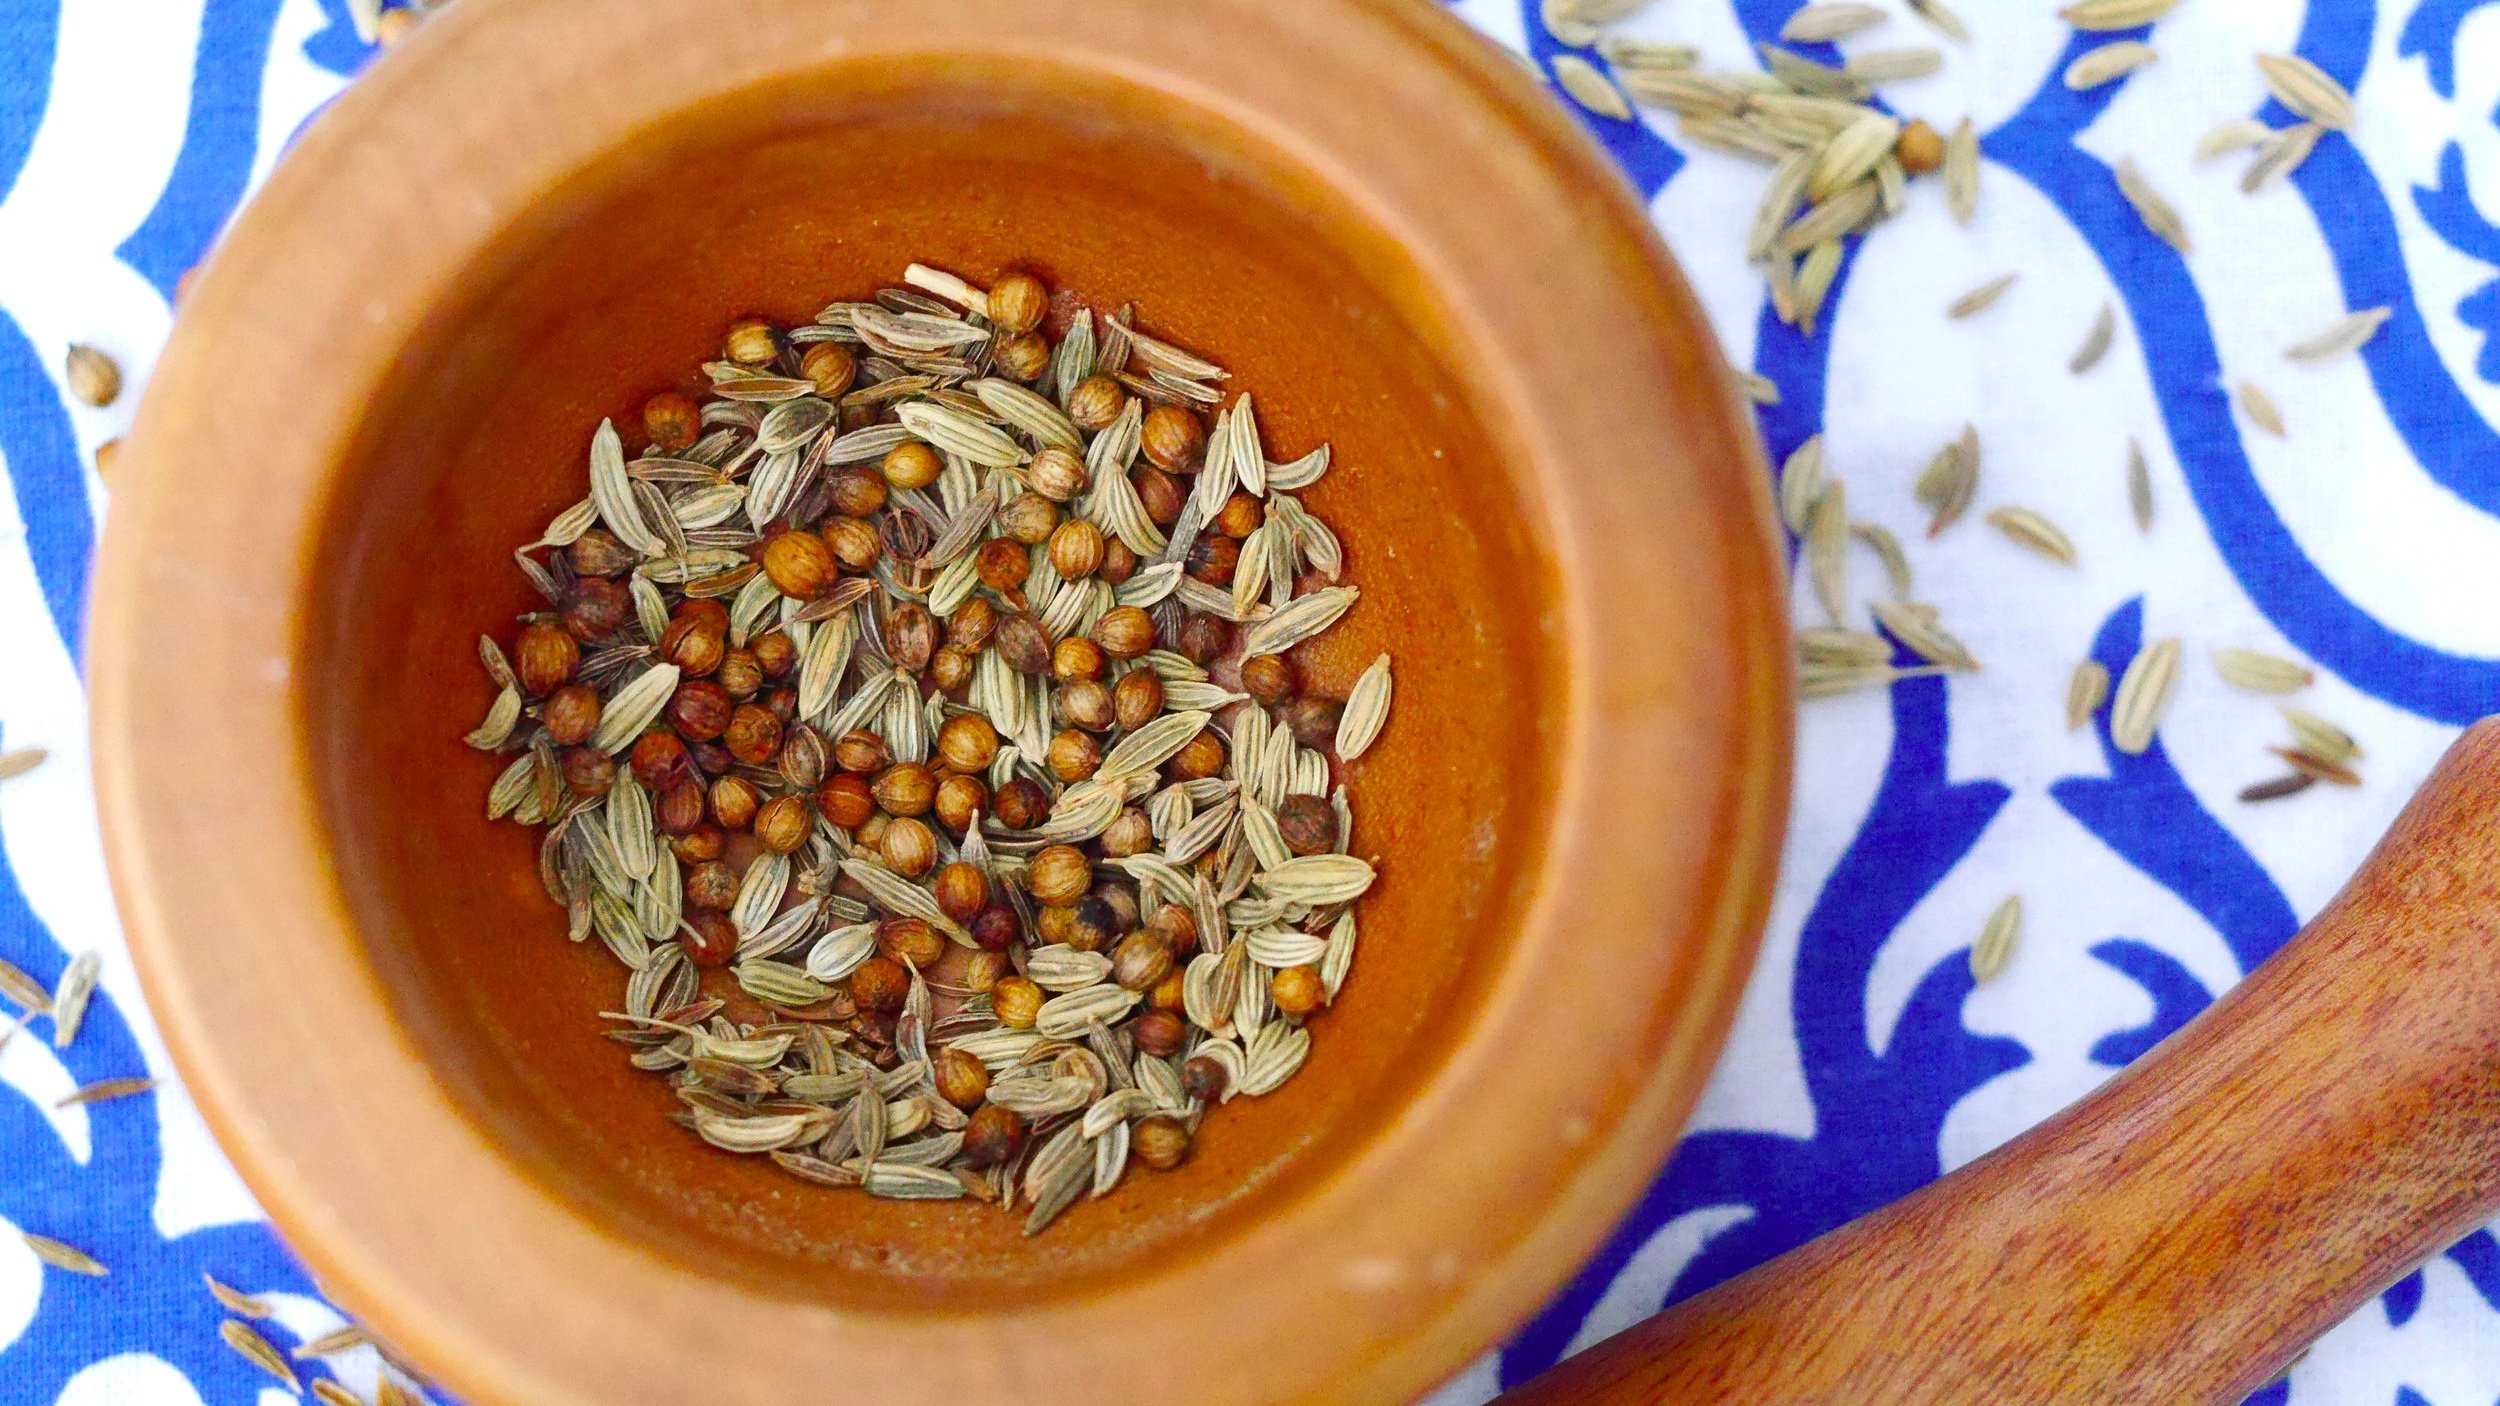 Overcome Indigestion & Bloating With This Delicious Digestive Spice Blend -